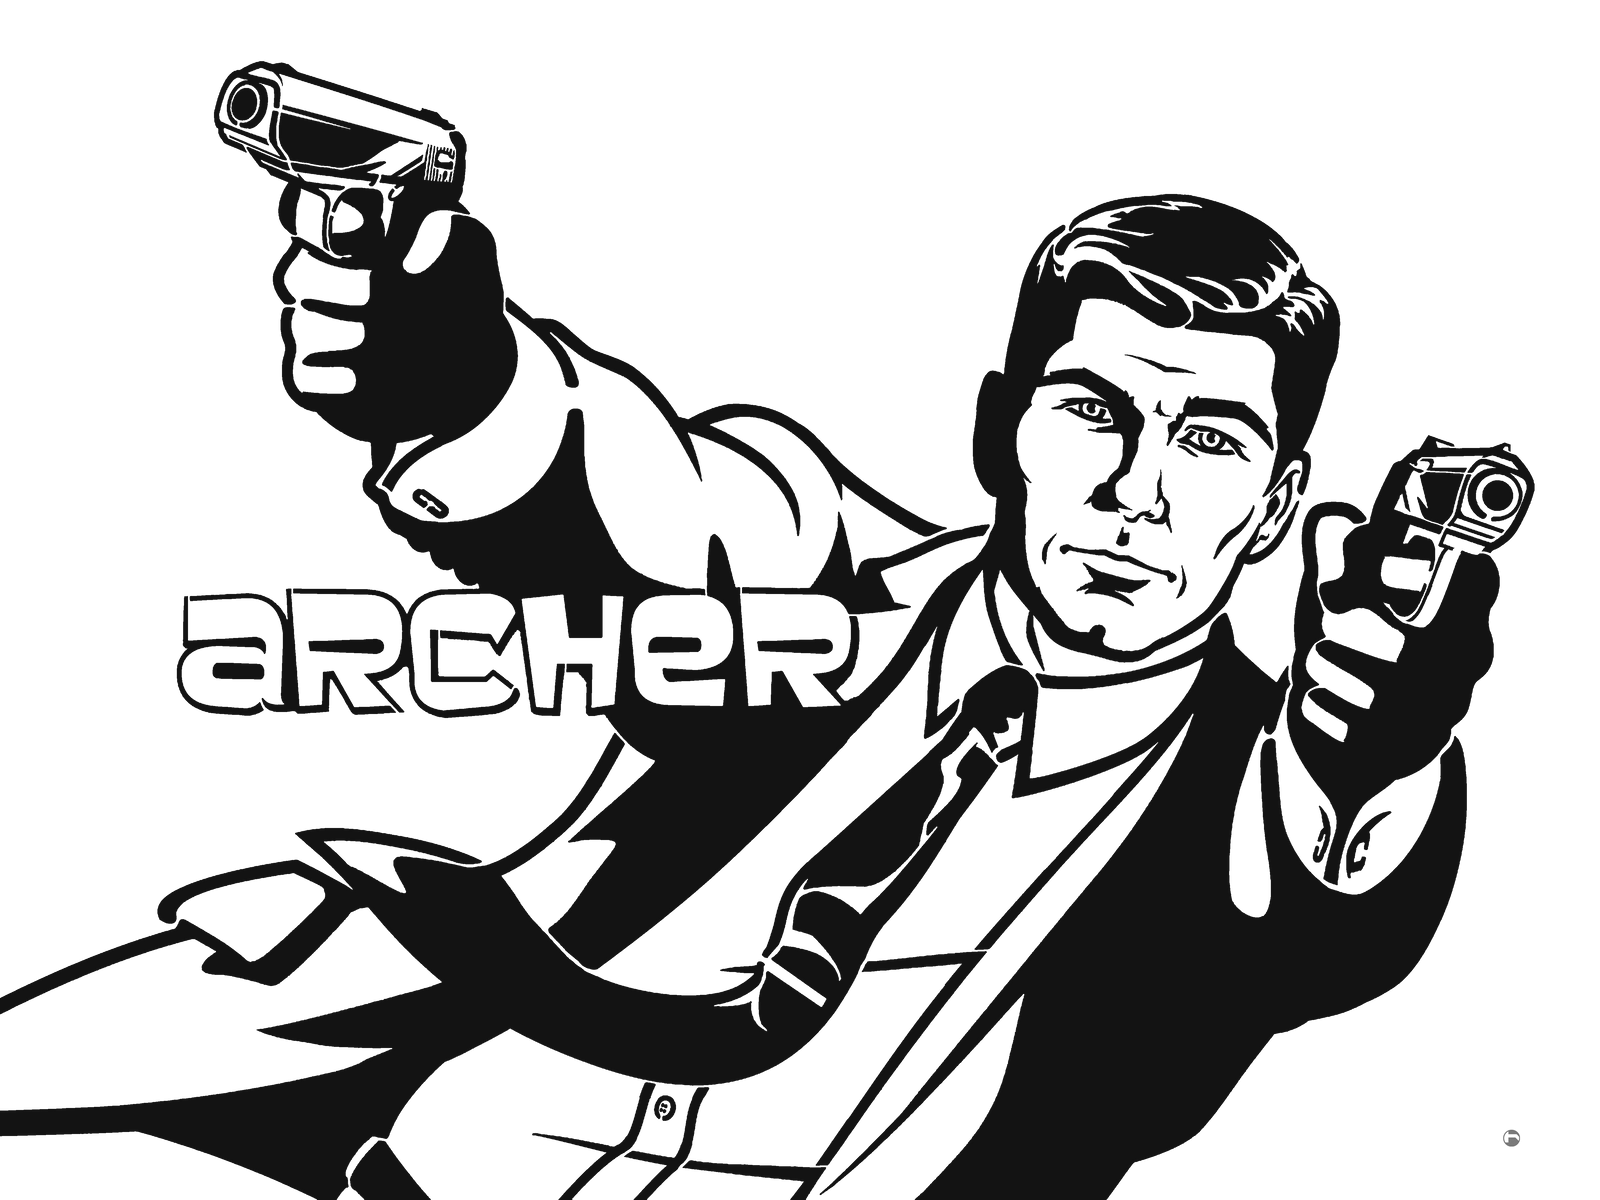 Sterling Archer plain white stencil by heinpold